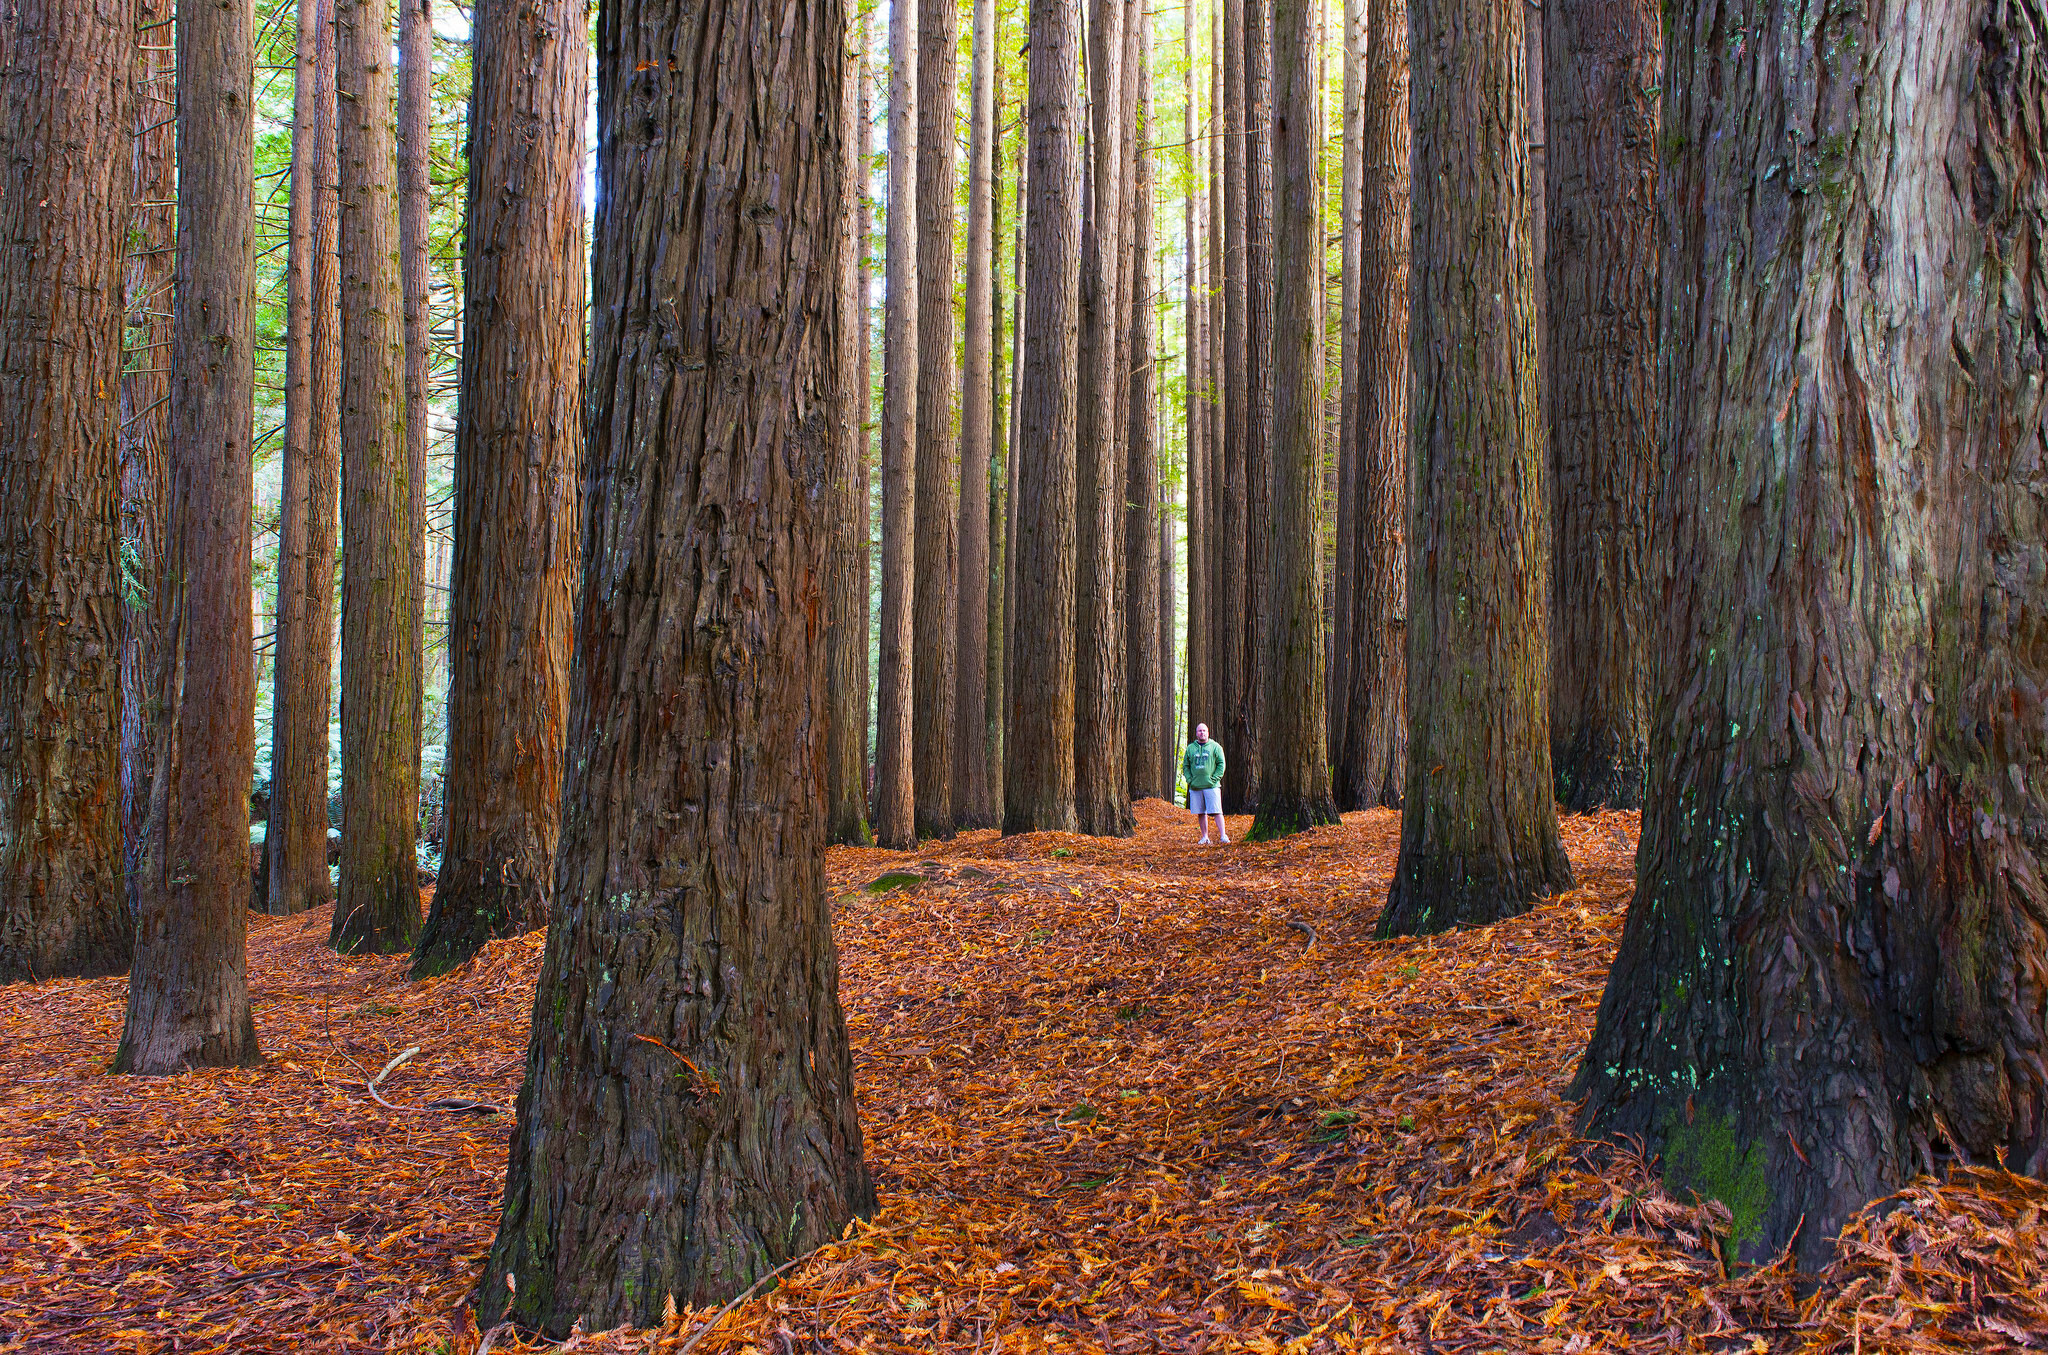 Where to find Californian redwood forests in Victoria